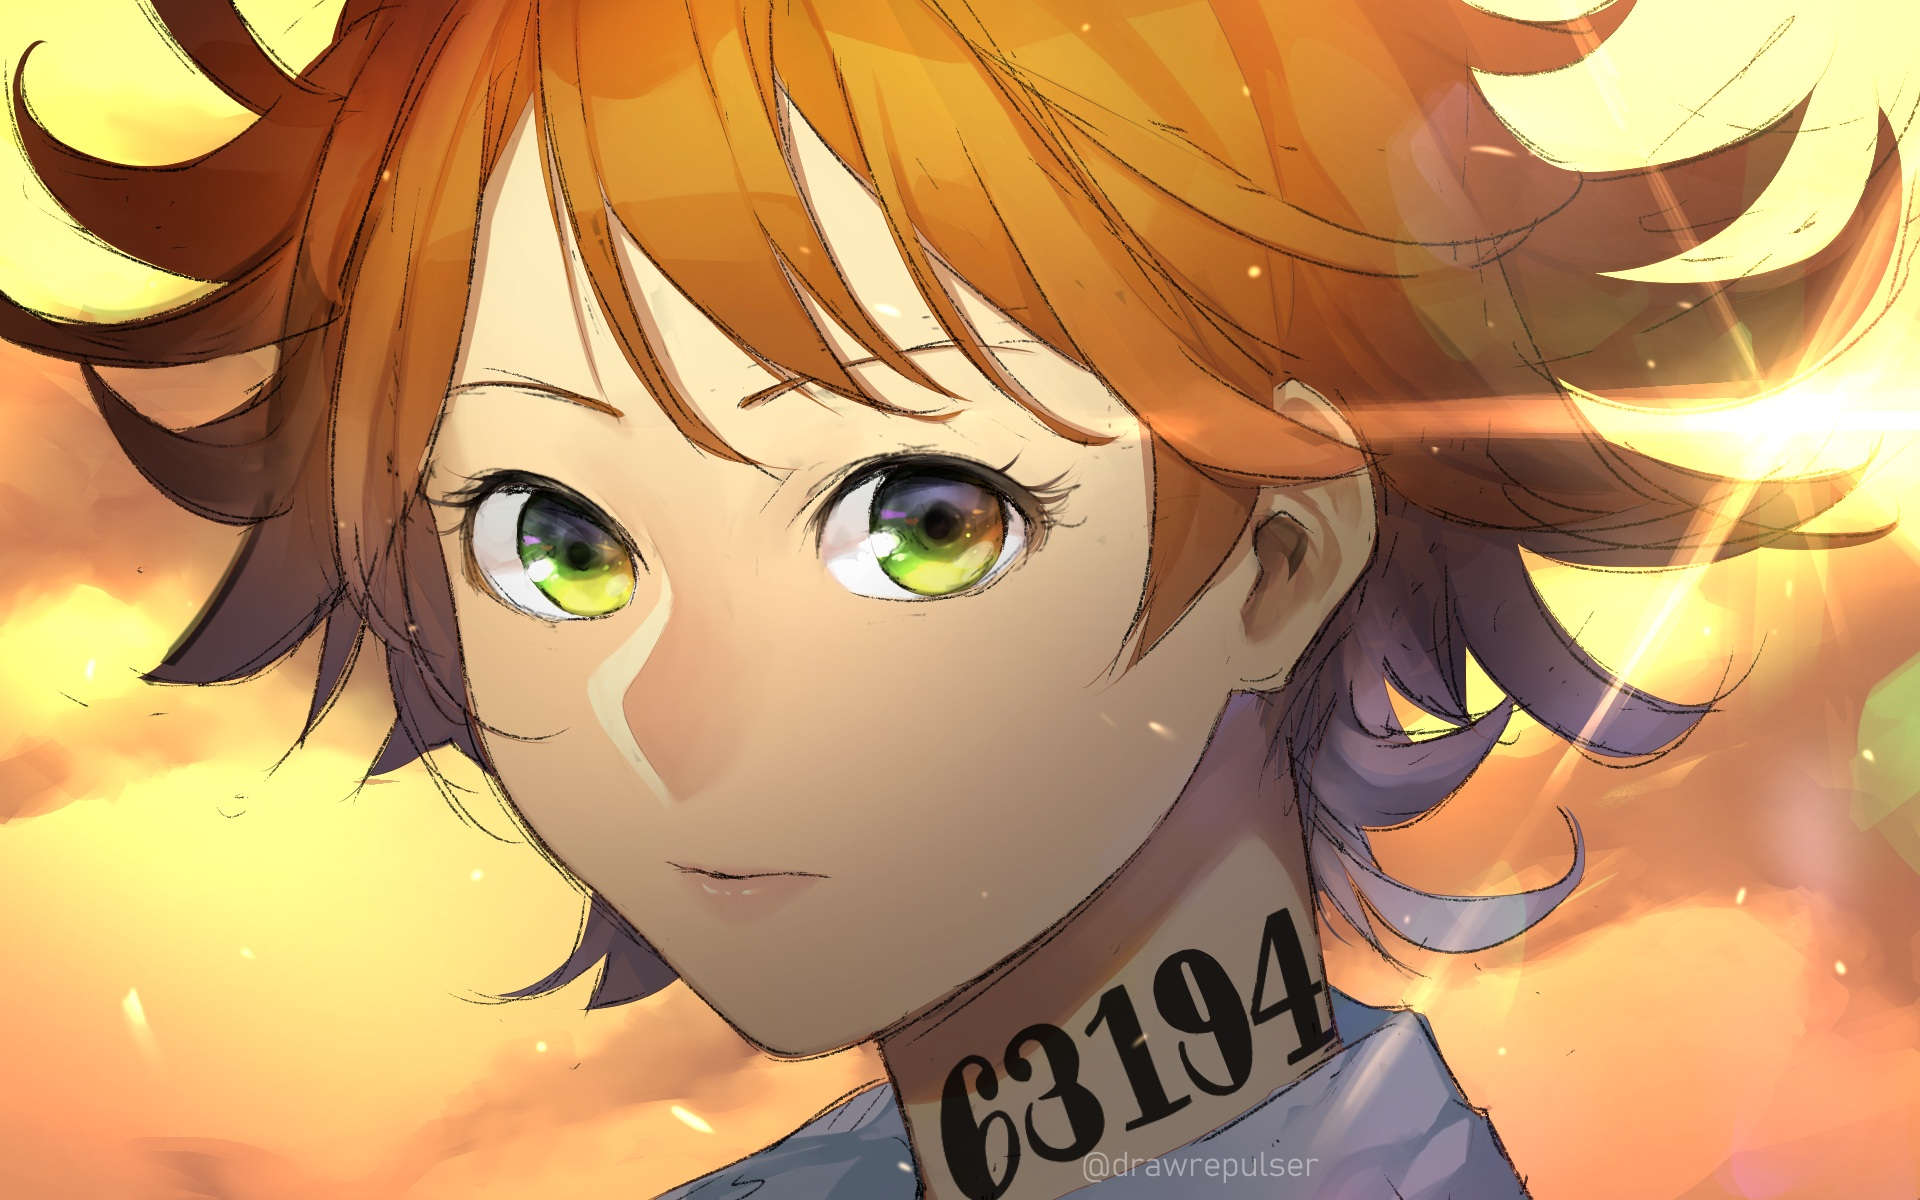 Wallpaper Of Emma The Promised Neverland Art Background Hd Image